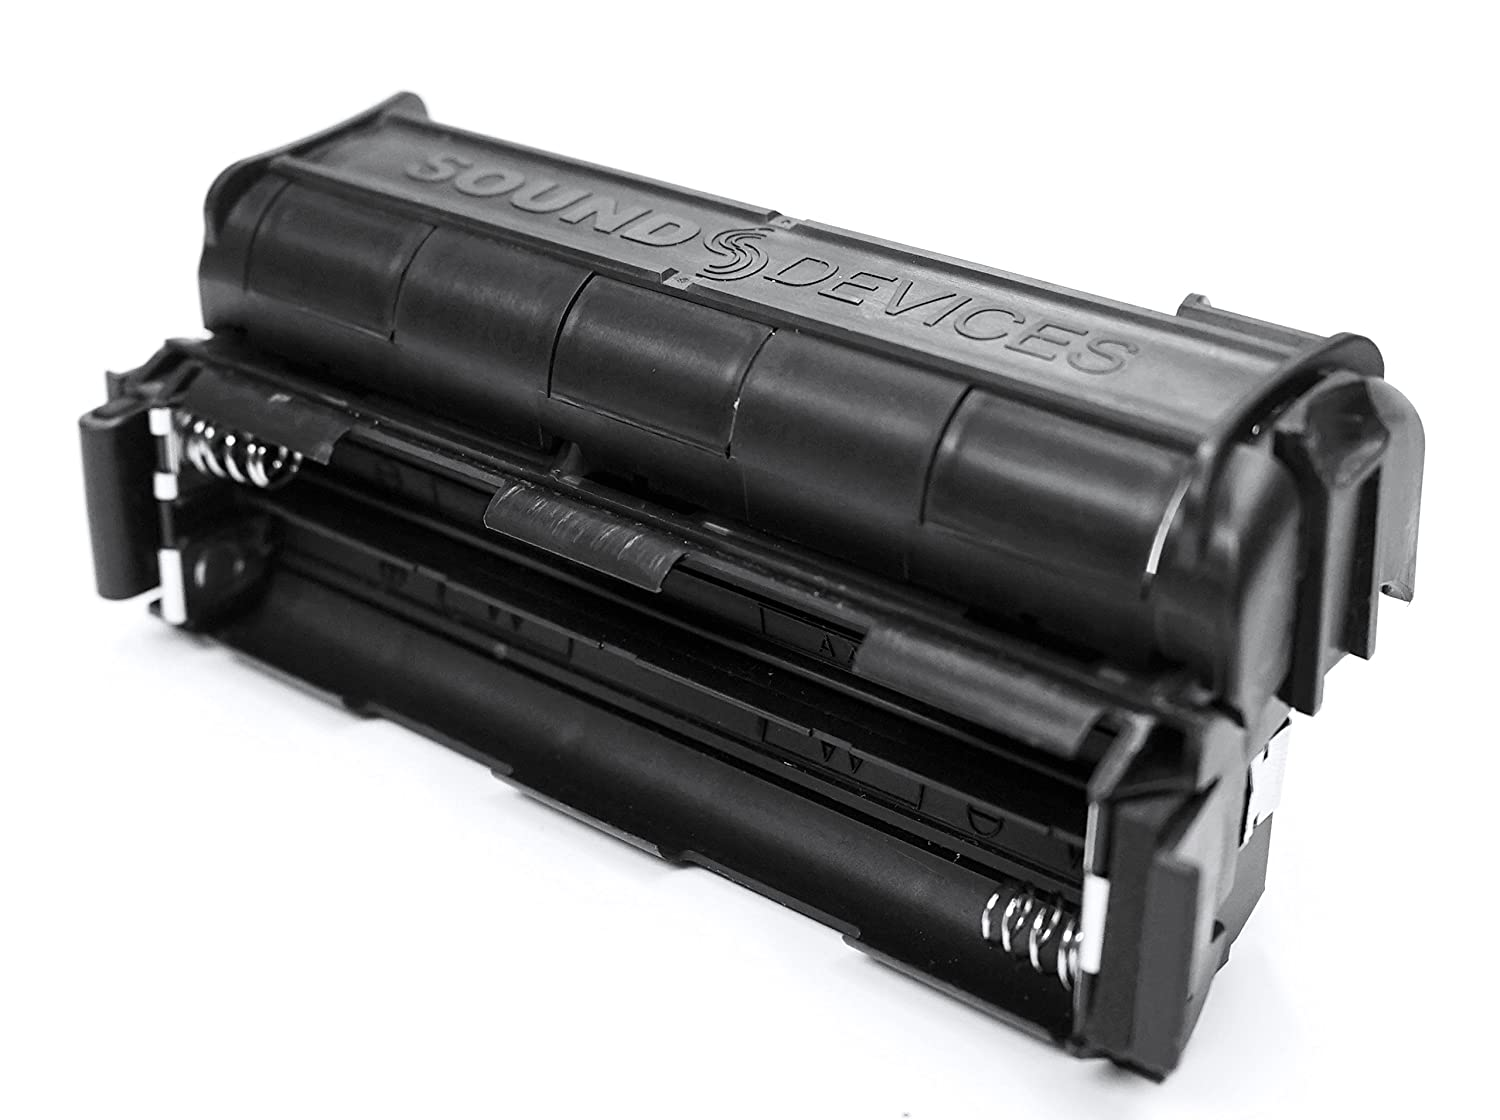 Sound Devices MX-8AA Battery Sled Accessory for the MixPre-3 /& MixPre-6 Audio Recorders